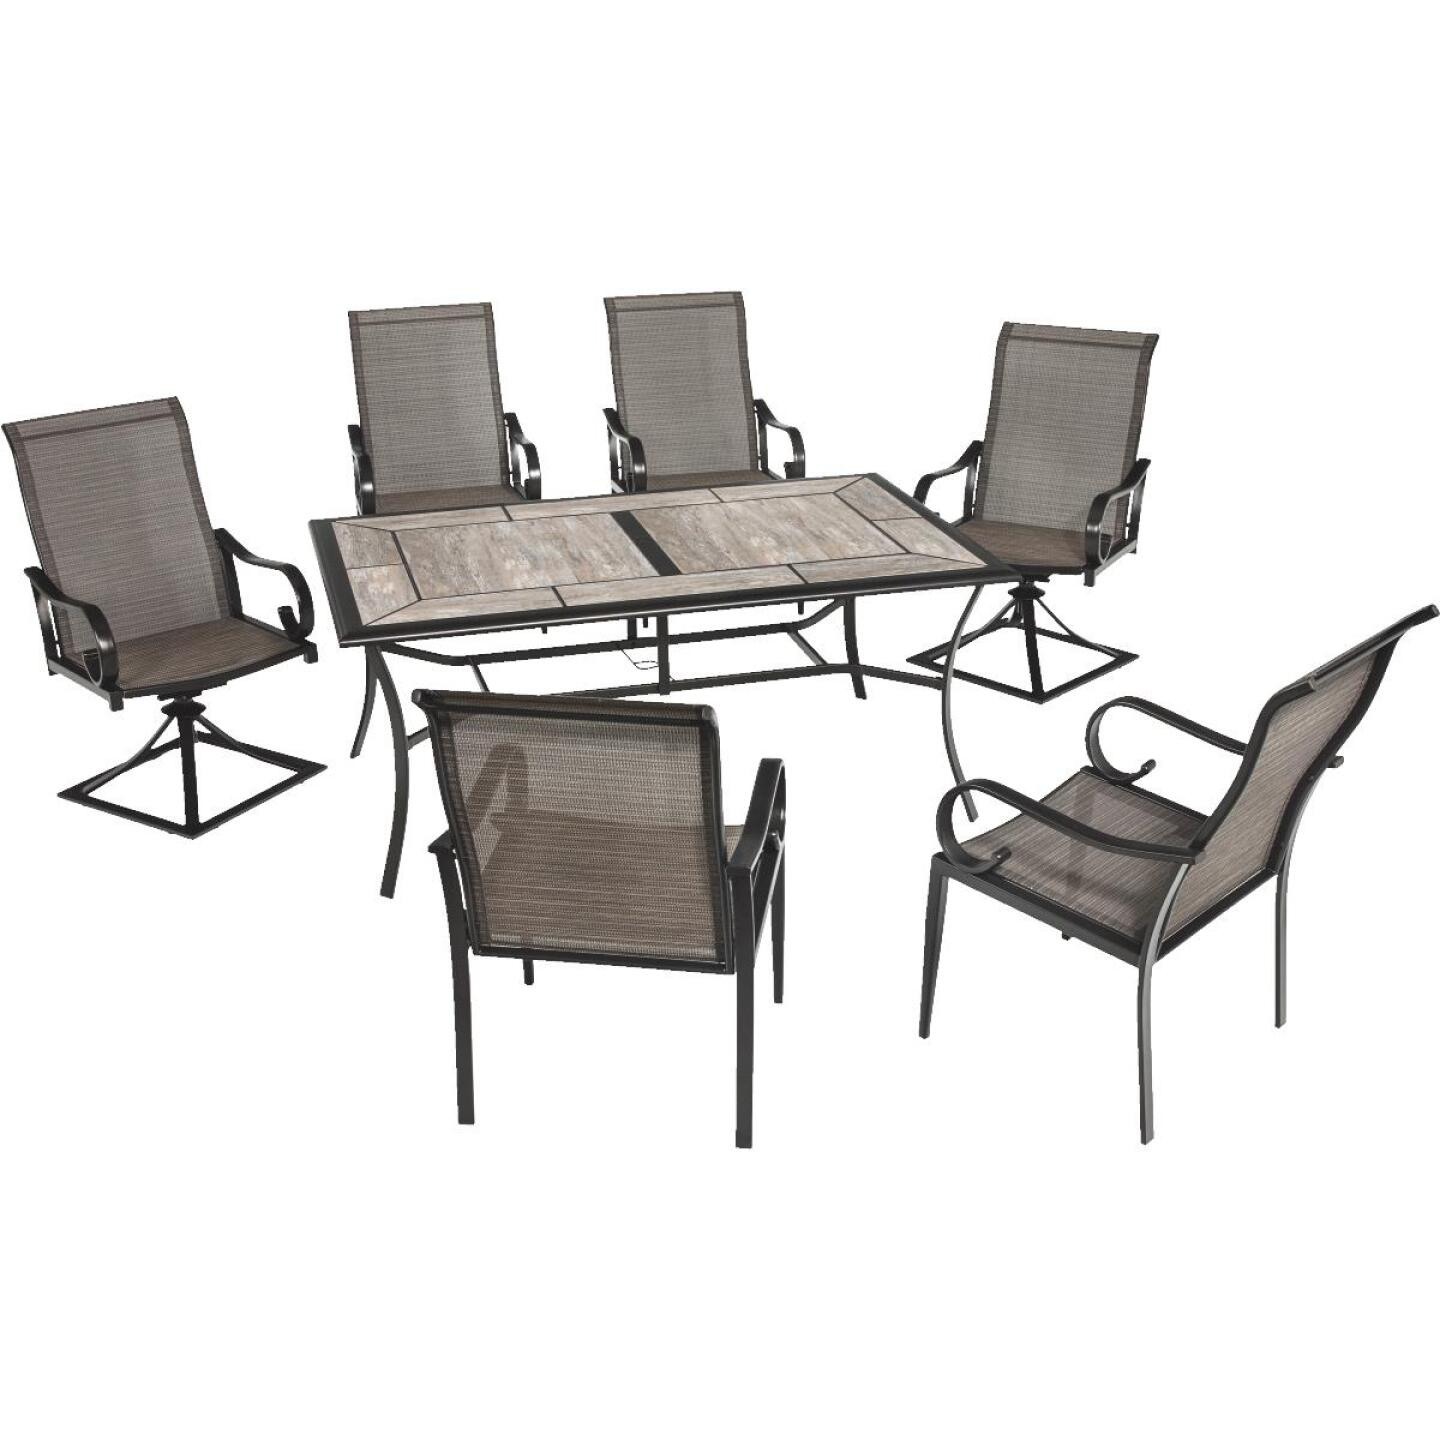 Outdoor Expressions Berkshire 7-Piece Dining Set Image 224